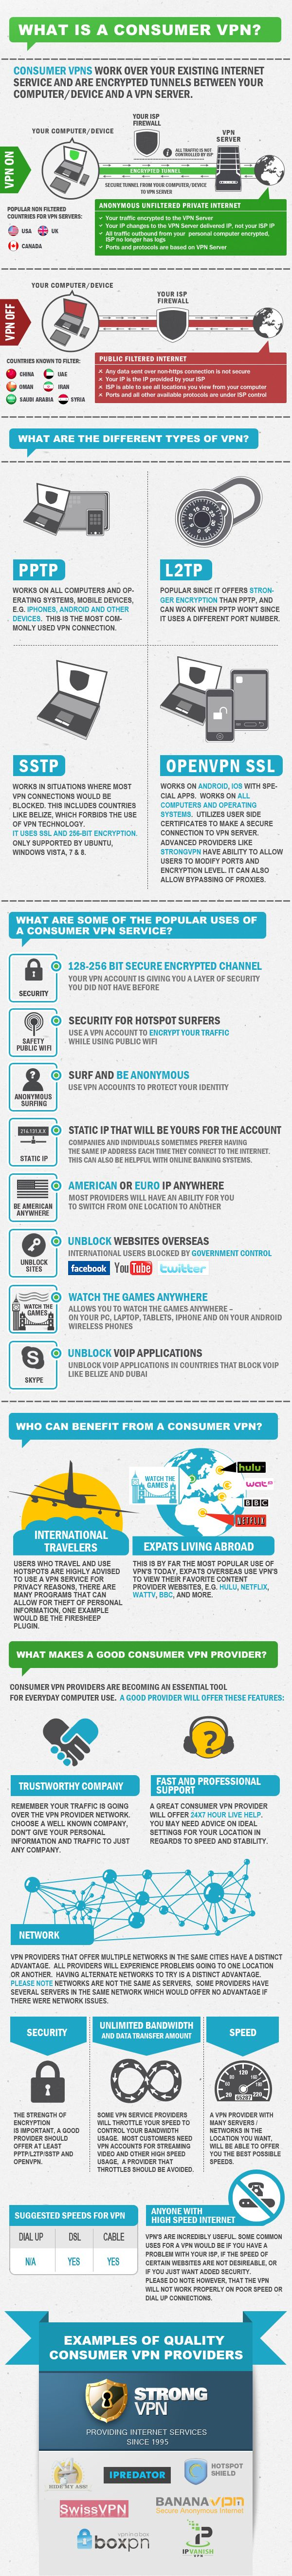 46 best Virtual Private Network images on Pinterest   Private ...